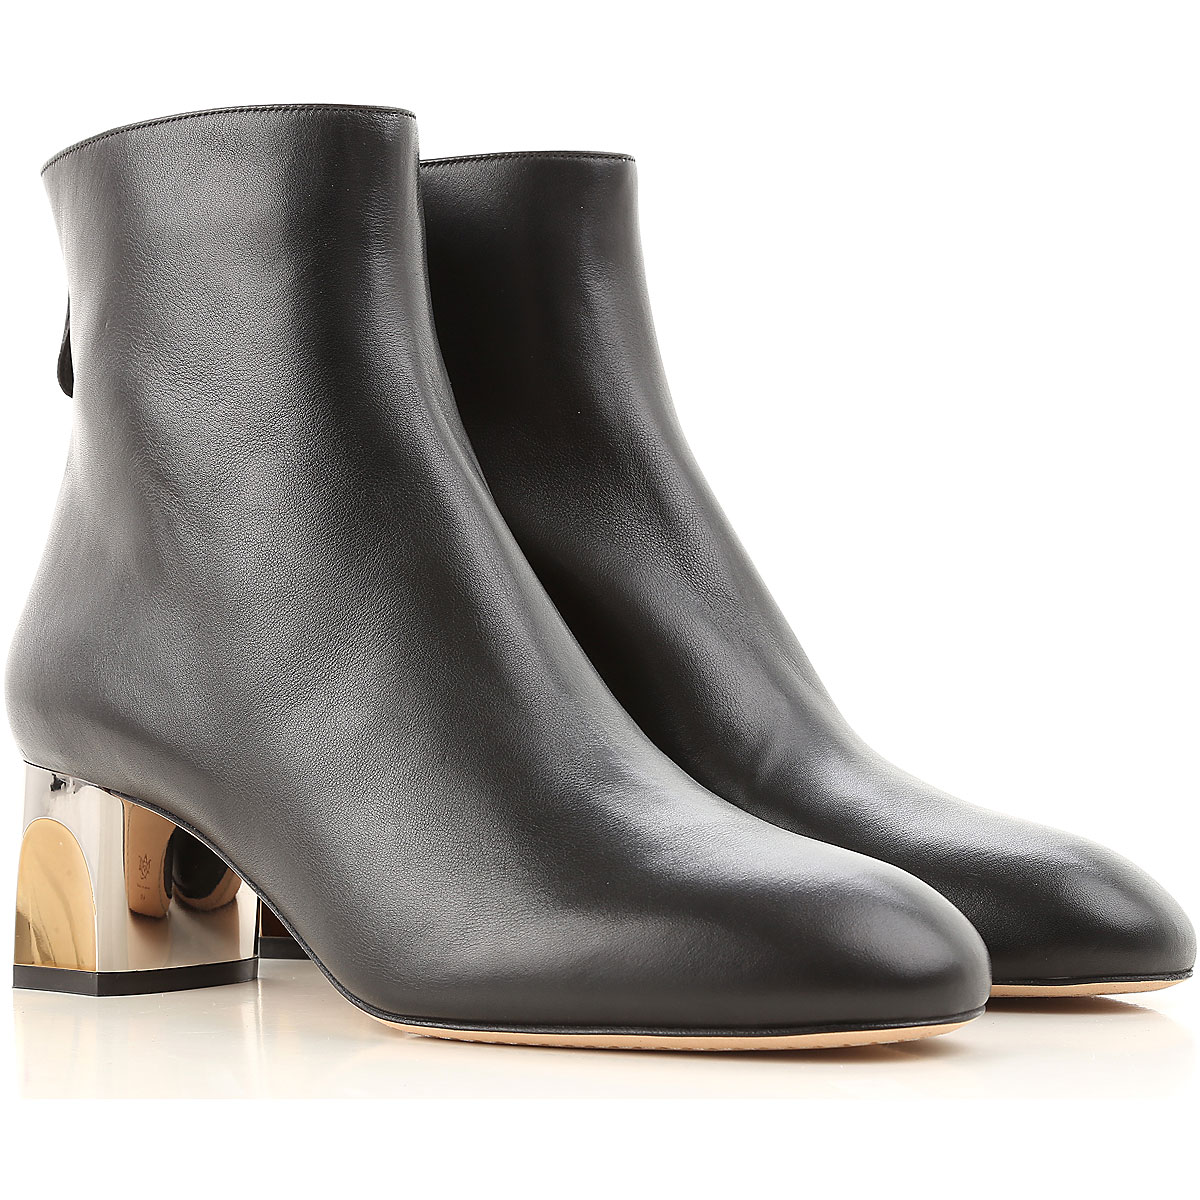 Alexander McQueen Boots for Women, Booties On Sale in Outlet, Black, Leather, 2019, 8 9